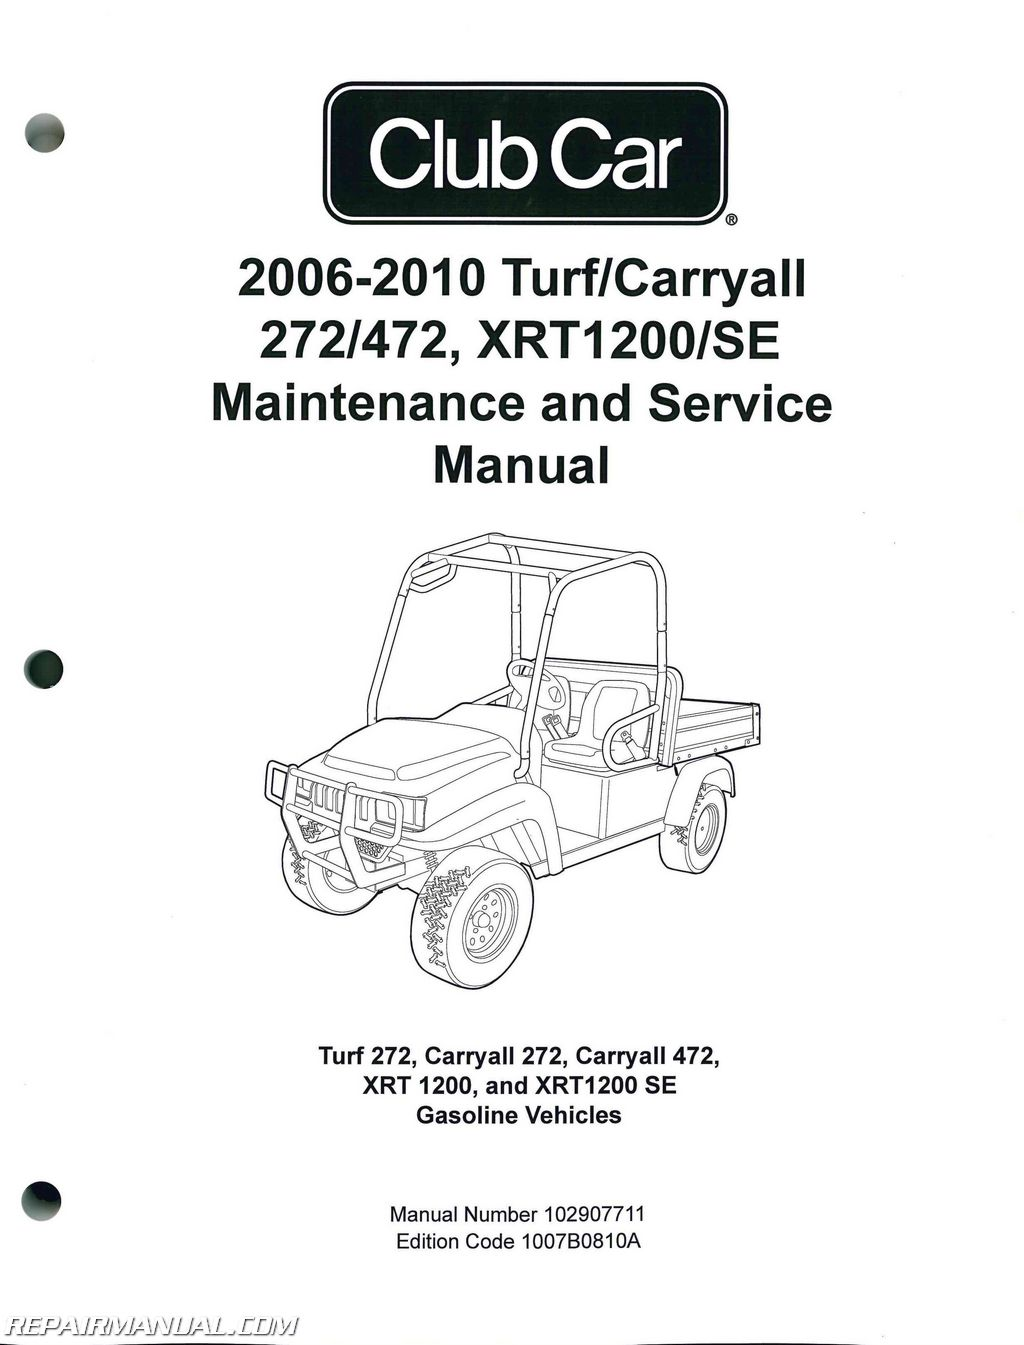 Club Car Turf Carryall 272 472 Xrt Se Turf